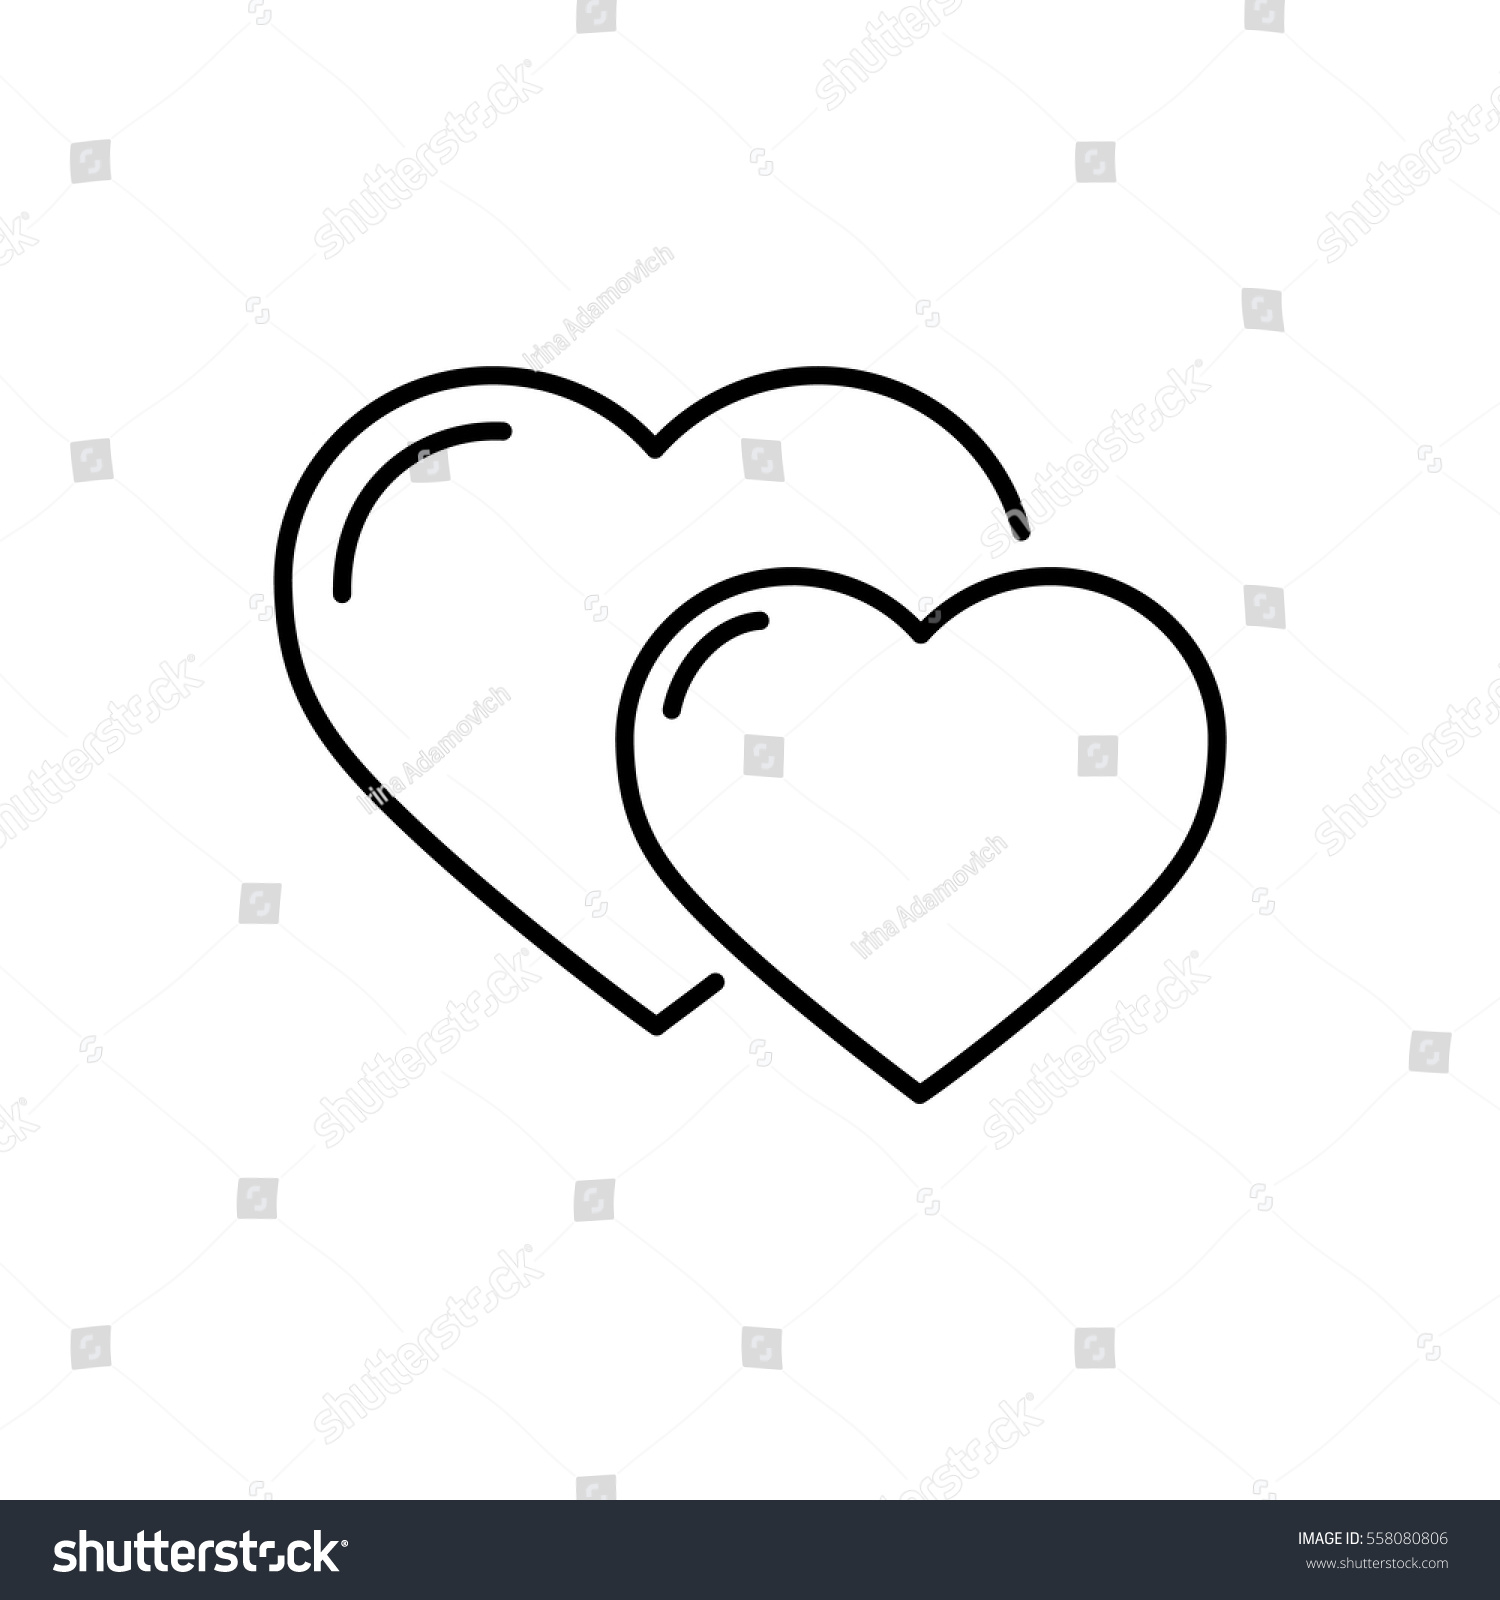 Hearts Thin Line Vector Icon Isolated Stock Vector 558080806 ... for Couple Sticker Line  45ifm